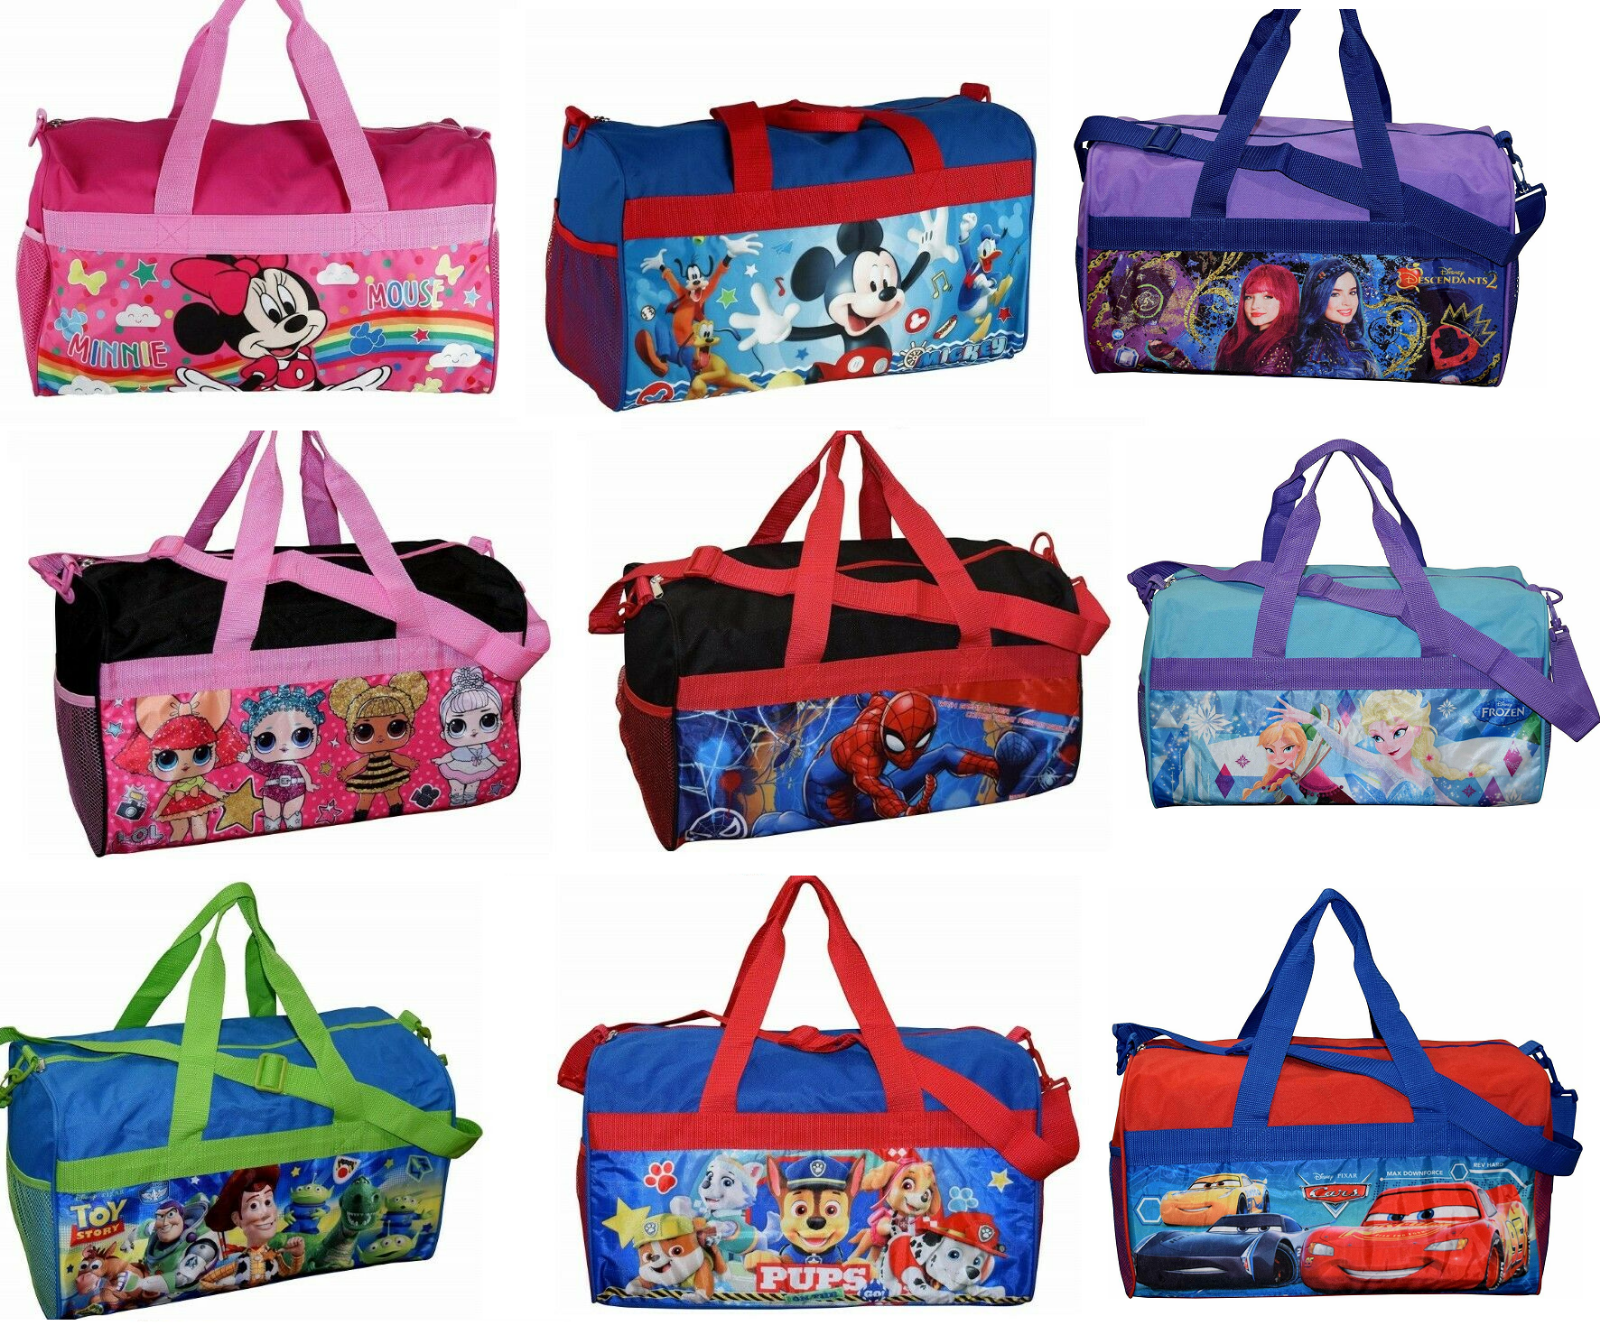 little kids duffel duffle bag sleep over